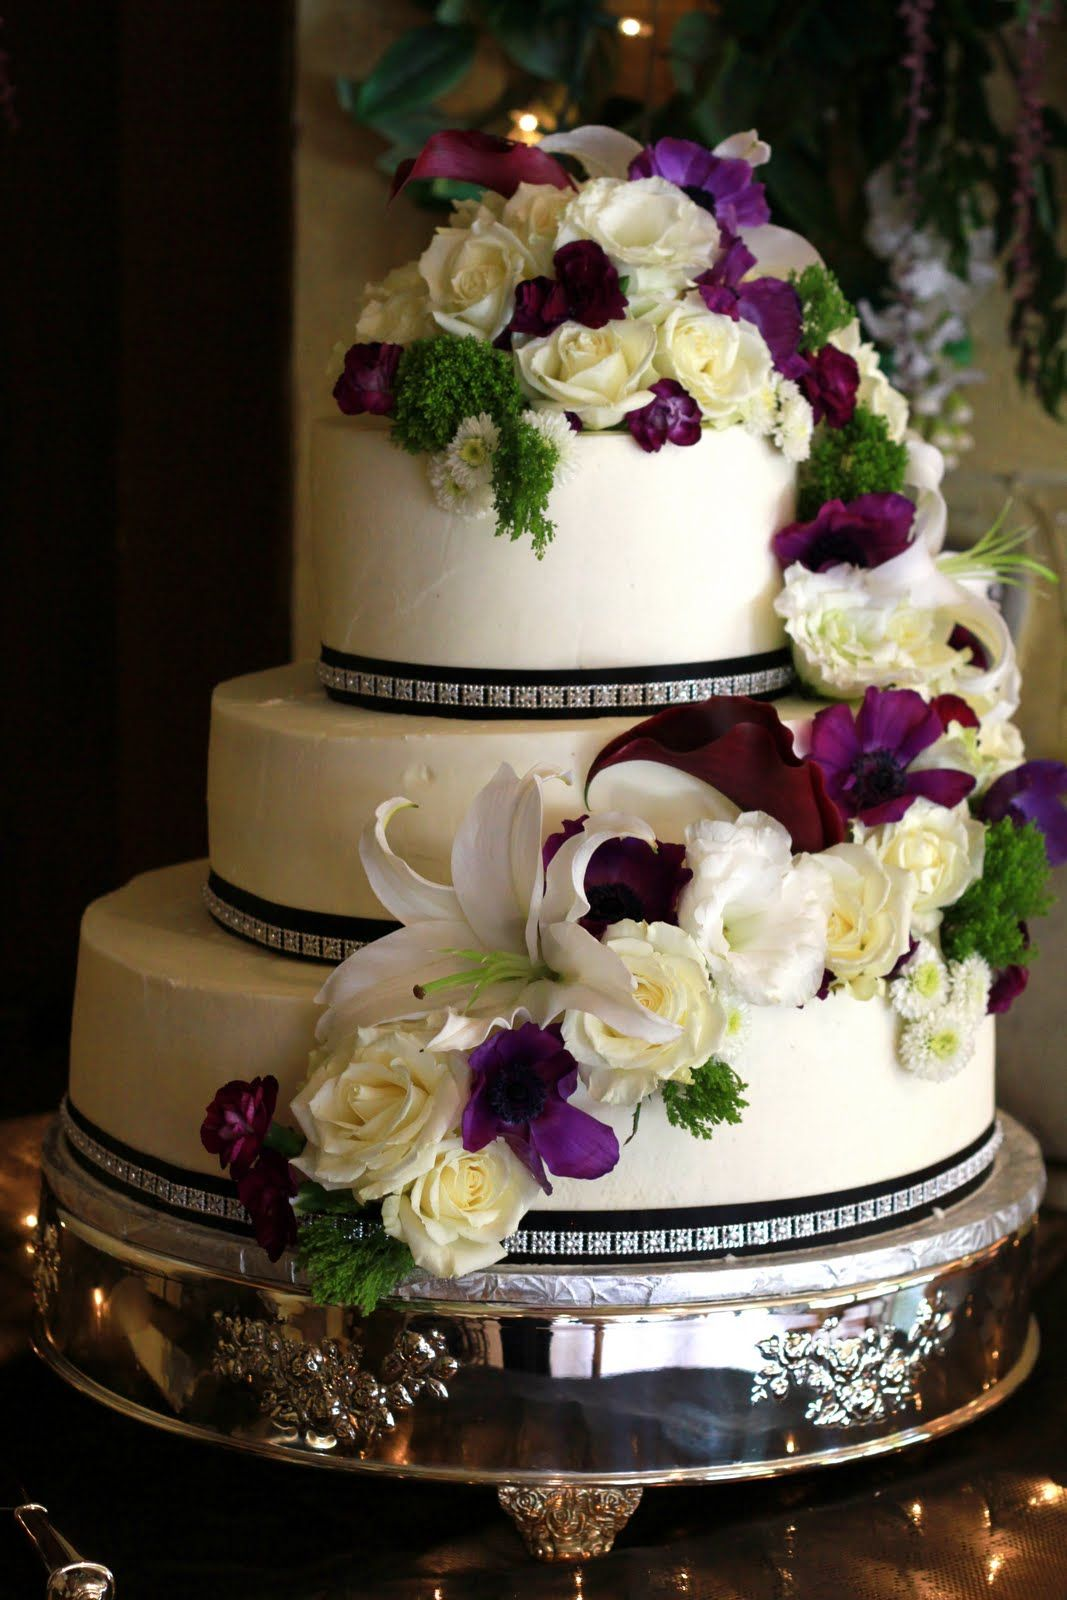 how to decorate tiered wedding cakes buttercream decorated wedding cakes exquisite cookies 3 15682